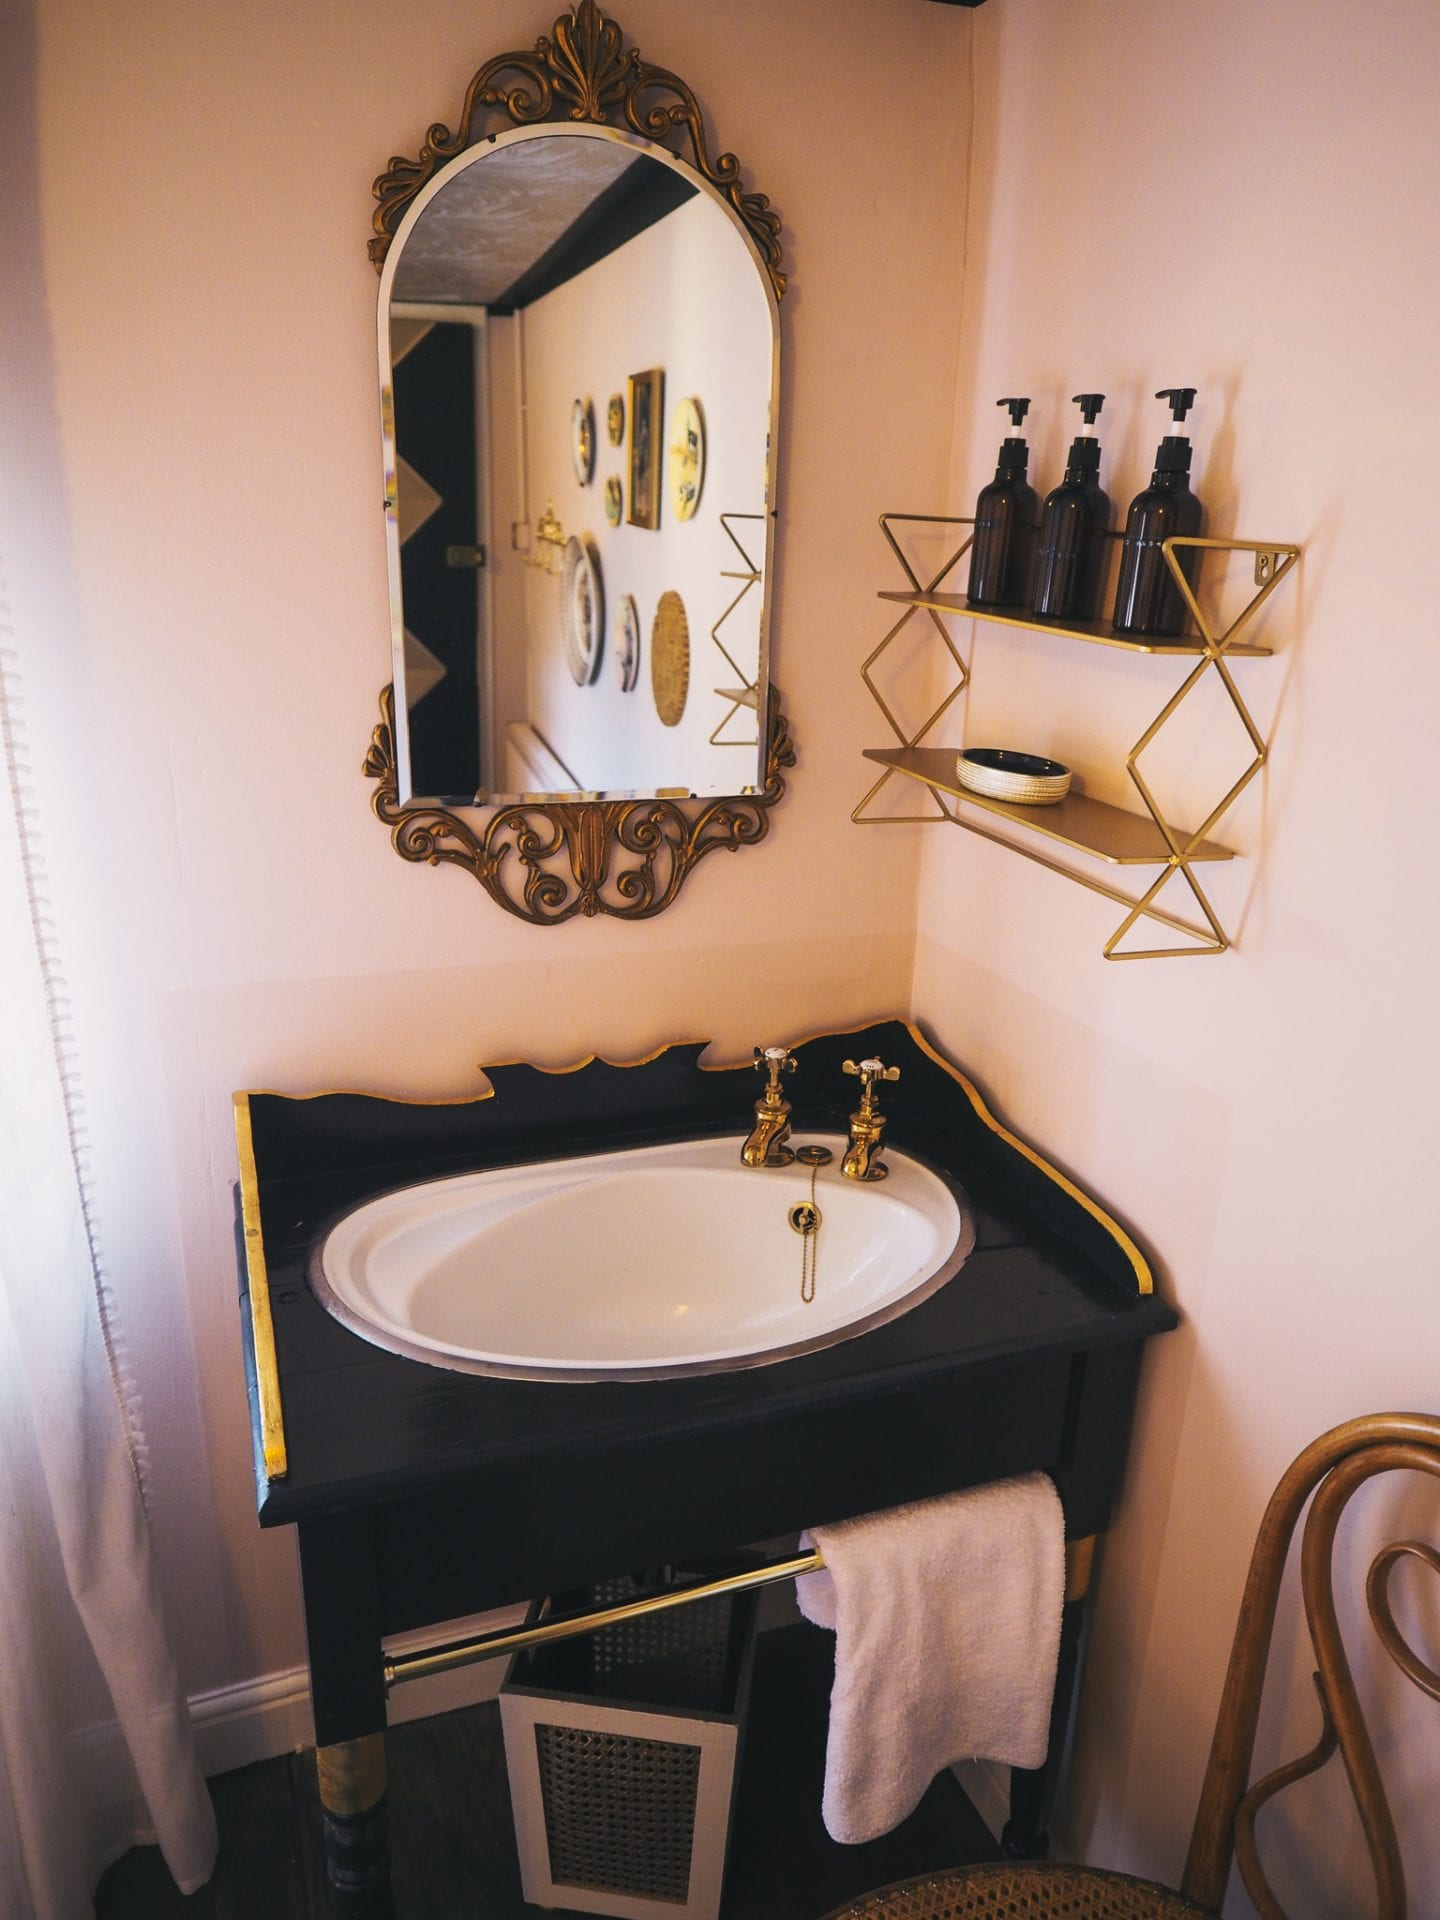 george-and-heart-margate-kent-black-and-gold-vintage-style-sink